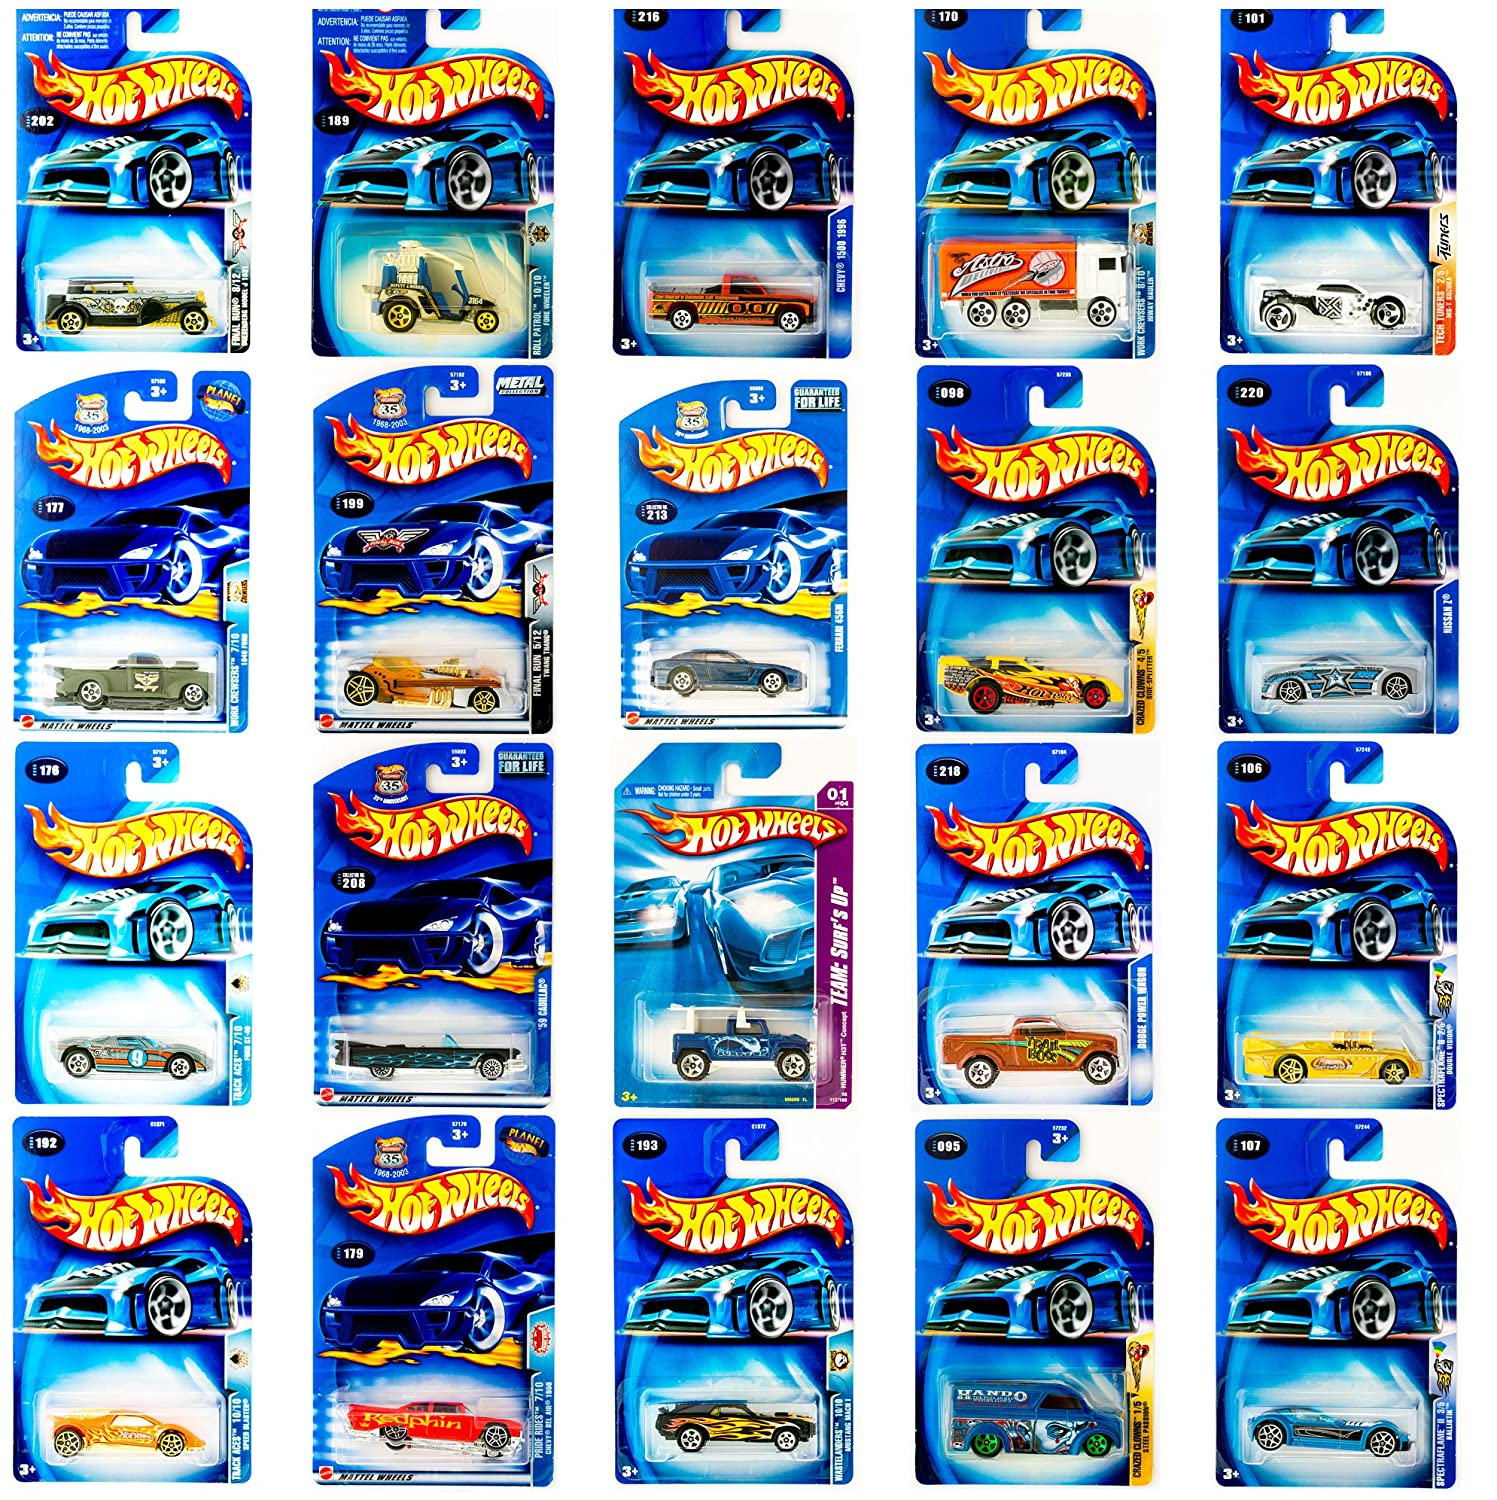 Hot Wheels Die Cast Vehicle Bundle of 4 Styles May Vary